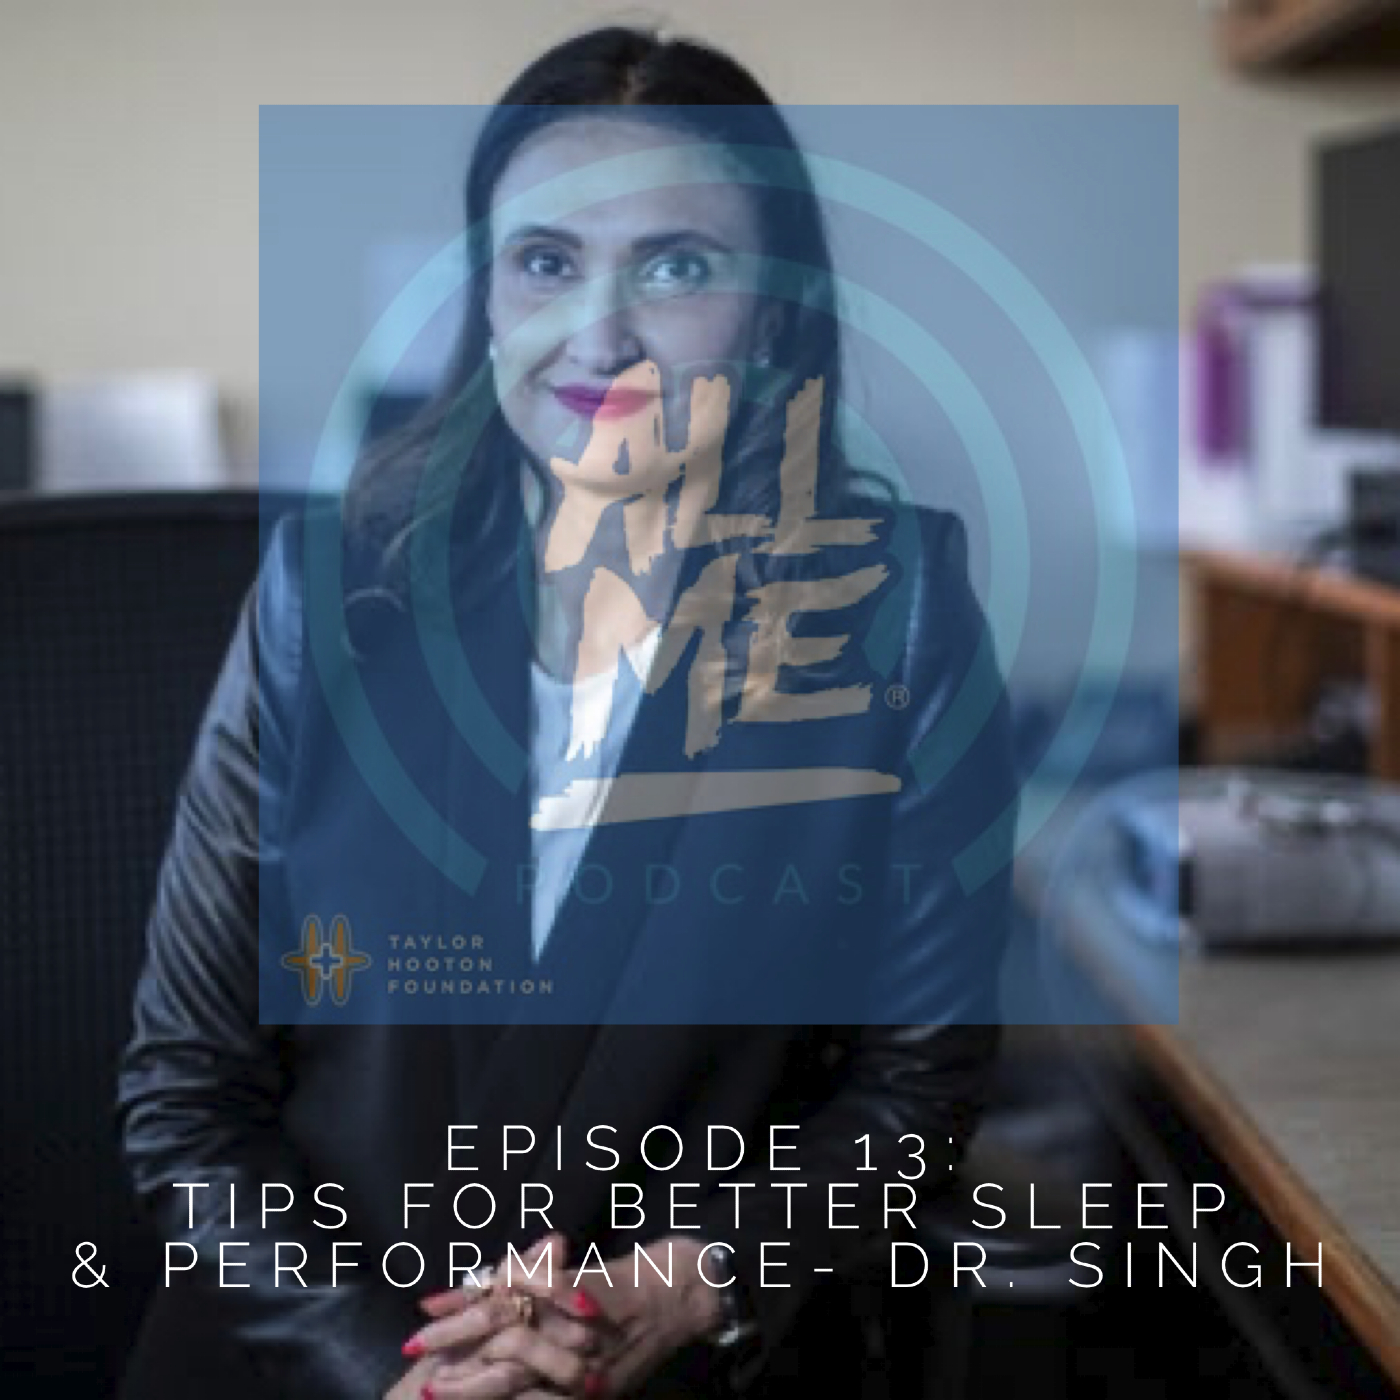 Episode 13: Tips for Better Sleep & Performance - Dr. Singh